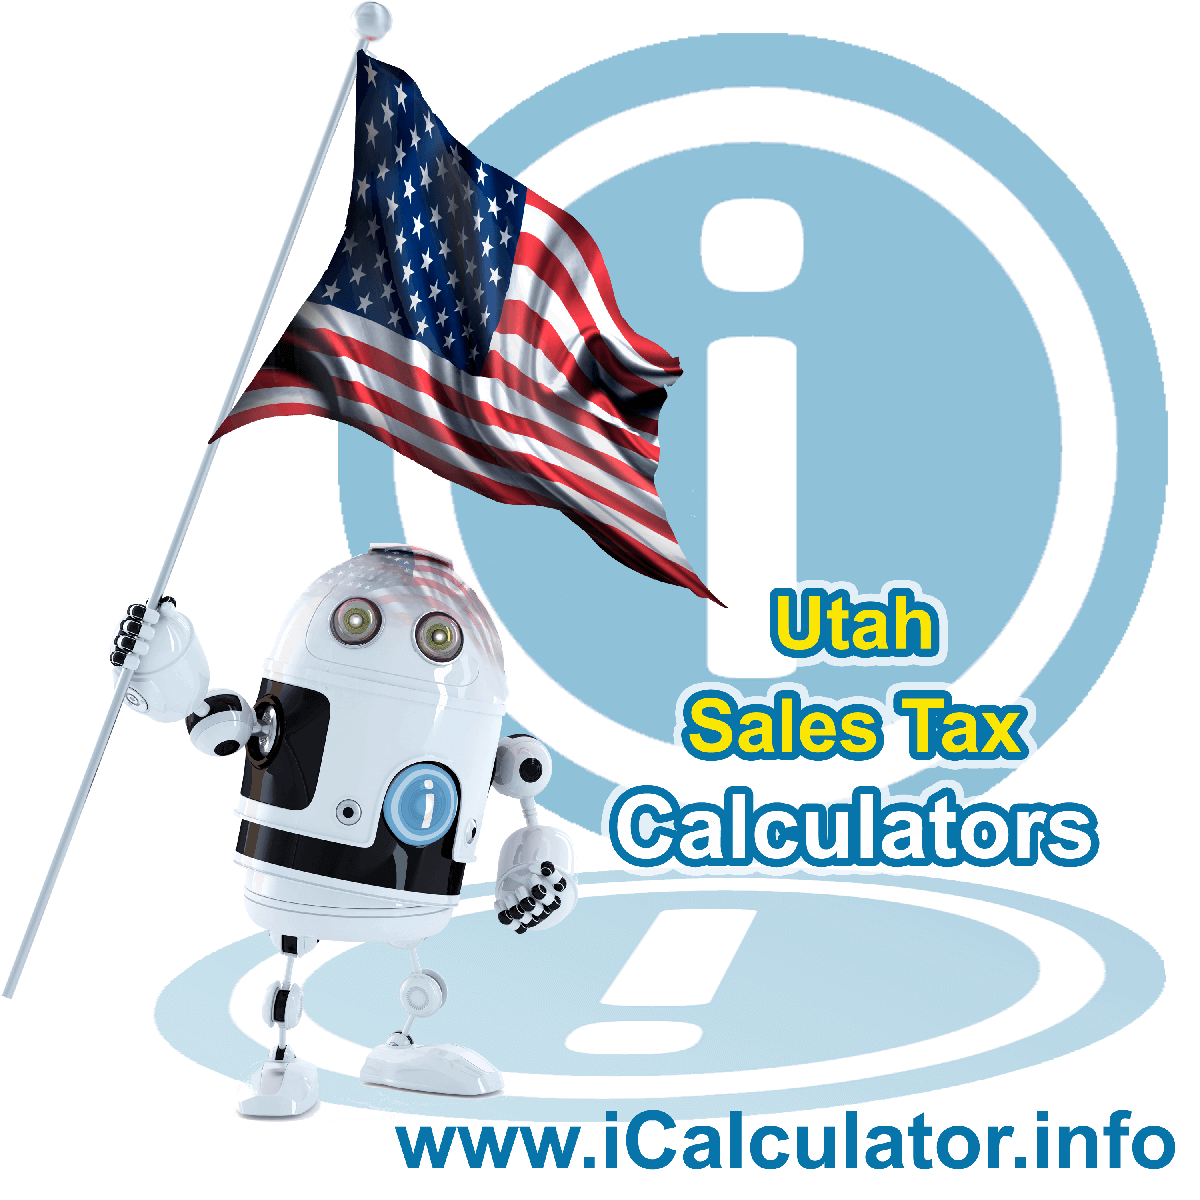 Utah Sales Tax Comparison Calculator: This image illustrates a calculator robot comparing sales tax in Utah manually using the Utah Sales Tax Formula. You can use this information to compare Sales Tax manually or use the Utah Sales Tax Comparison Calculator to calculate and compare Utah sales tax online.